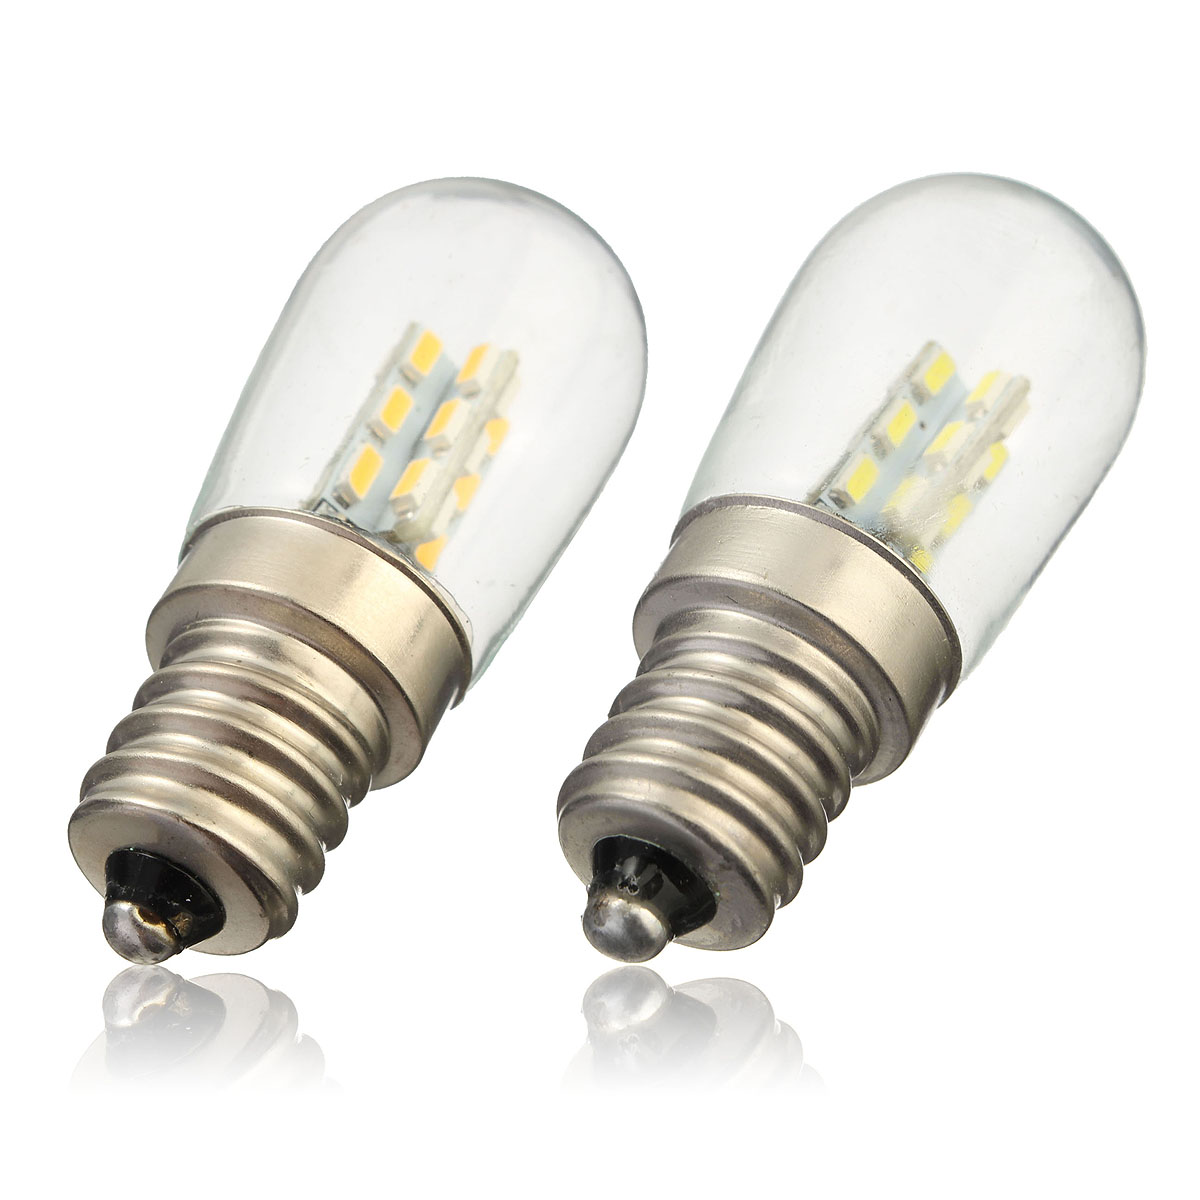 Singer Sewing Machine Light Bulbs: E12 2W Screw Base High Bright 3014 SMD 24 LED Glass Shade Light Lamp Bulb  Pure,Lighting